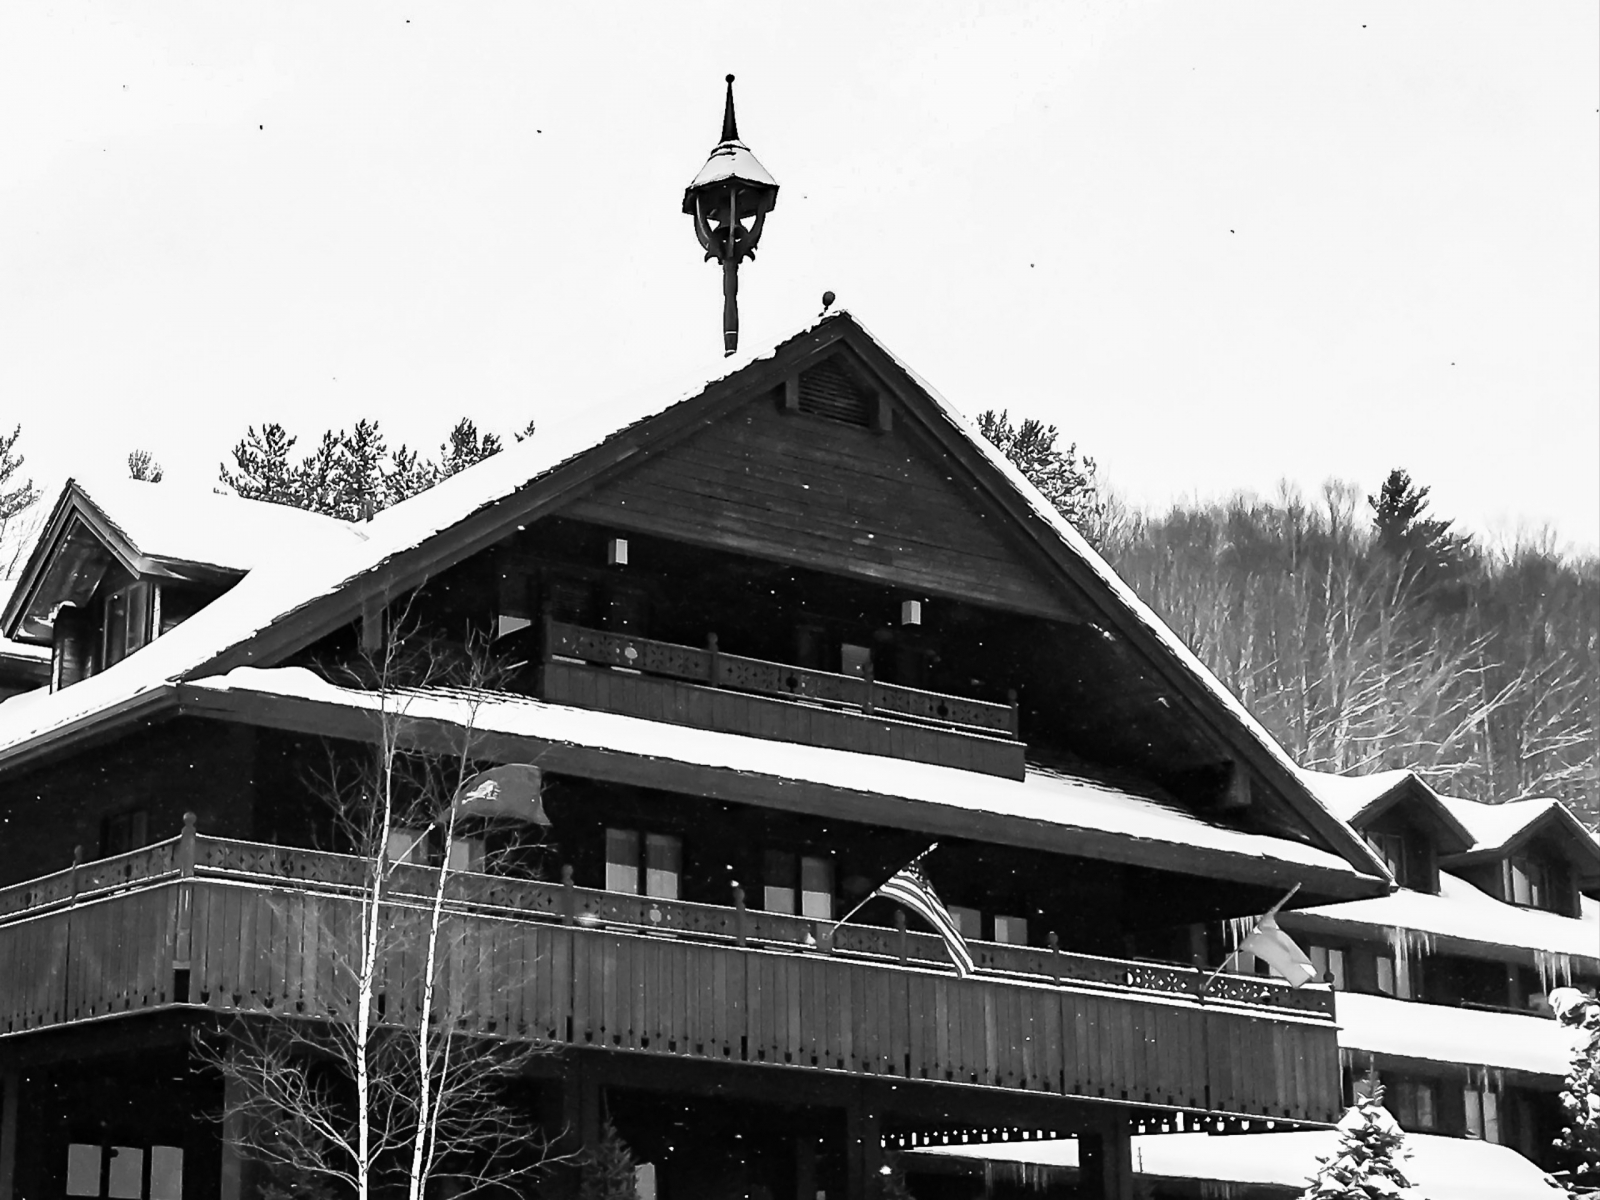 Von Trapp Family Lodge